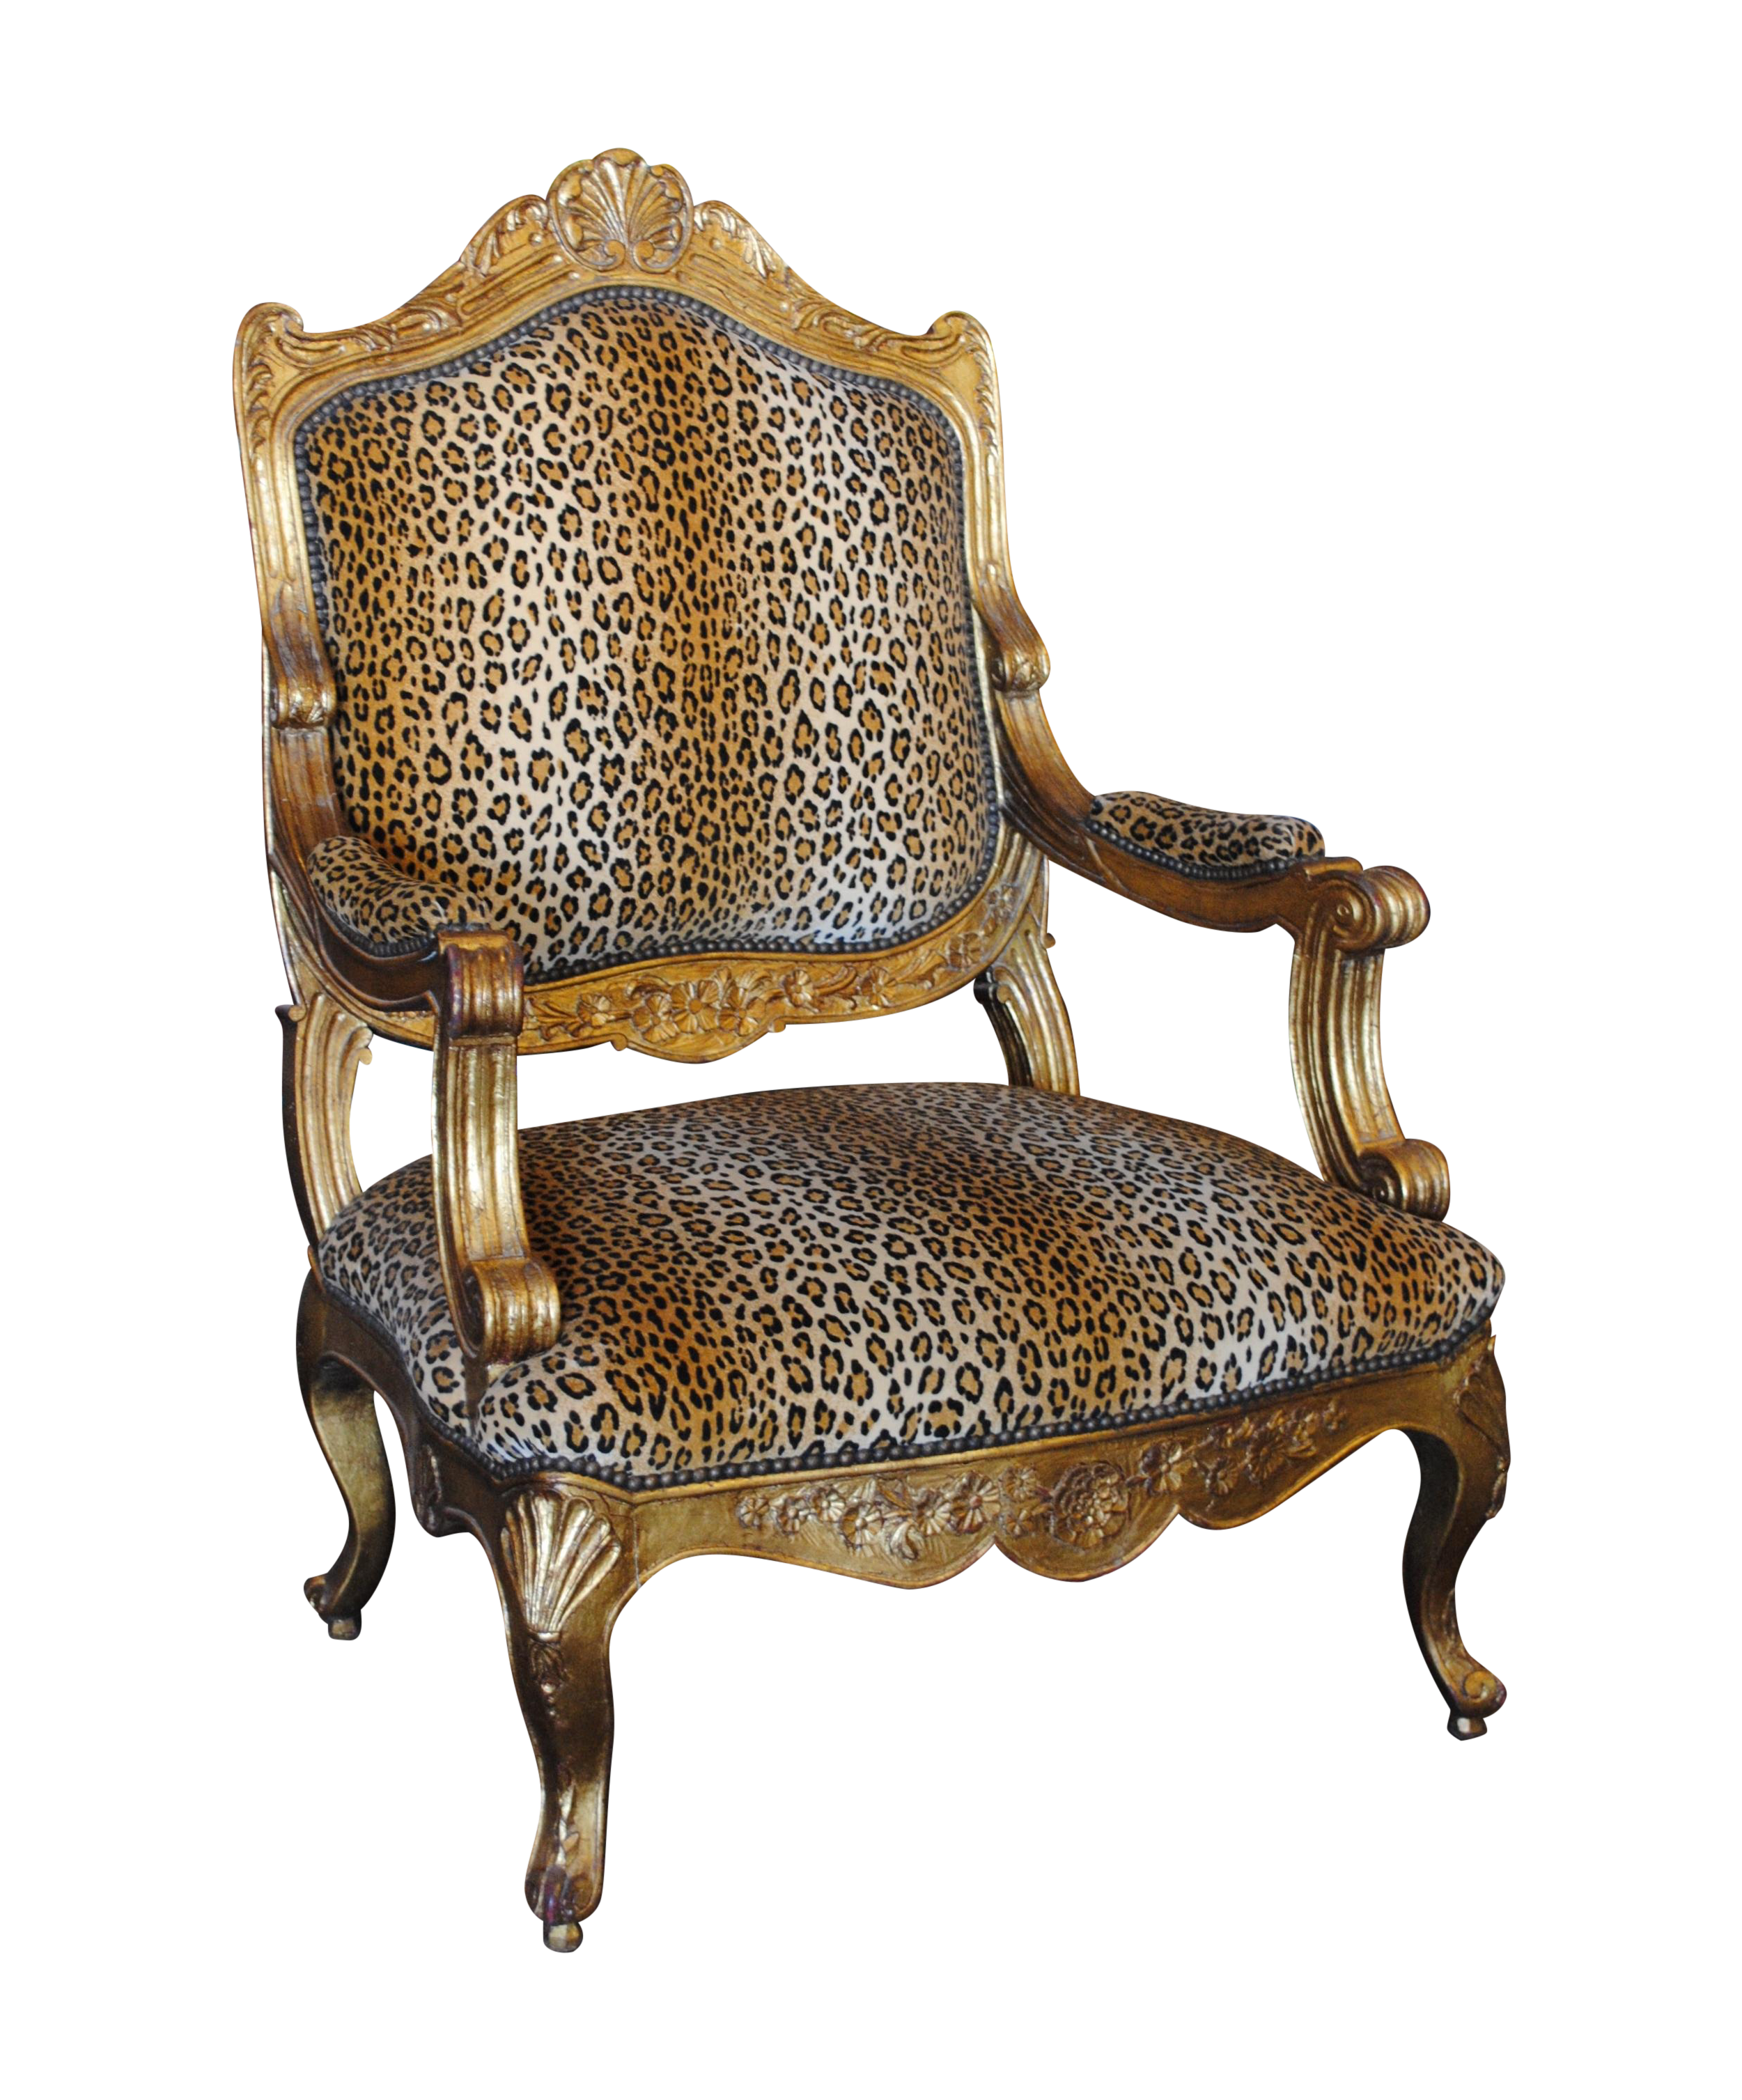 Leopard armchair - Image Of French Louis Xv Style Giltwood Leopard Armchair